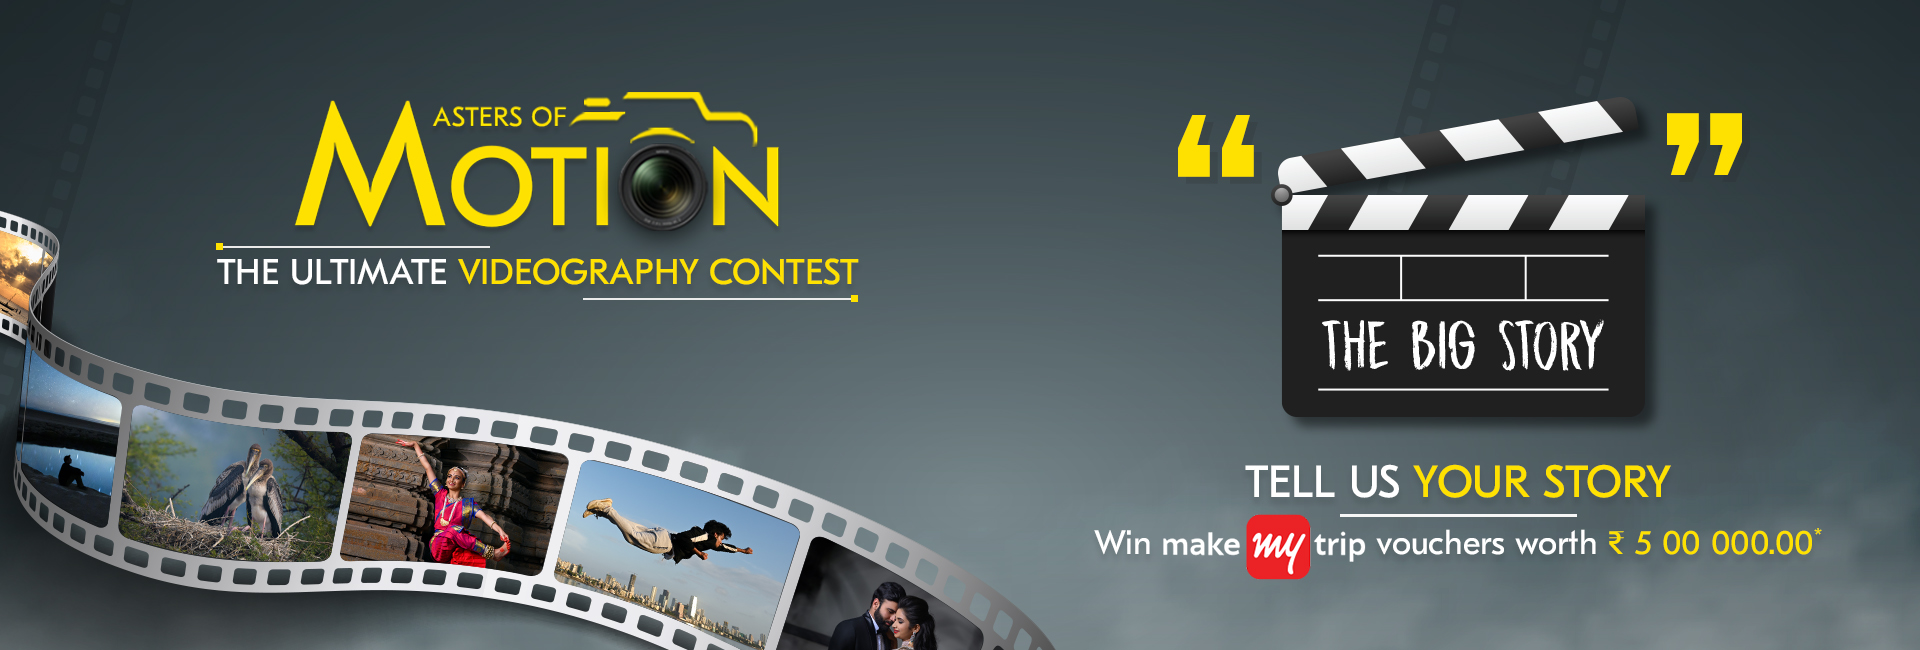 Women Photography Contest - Banner